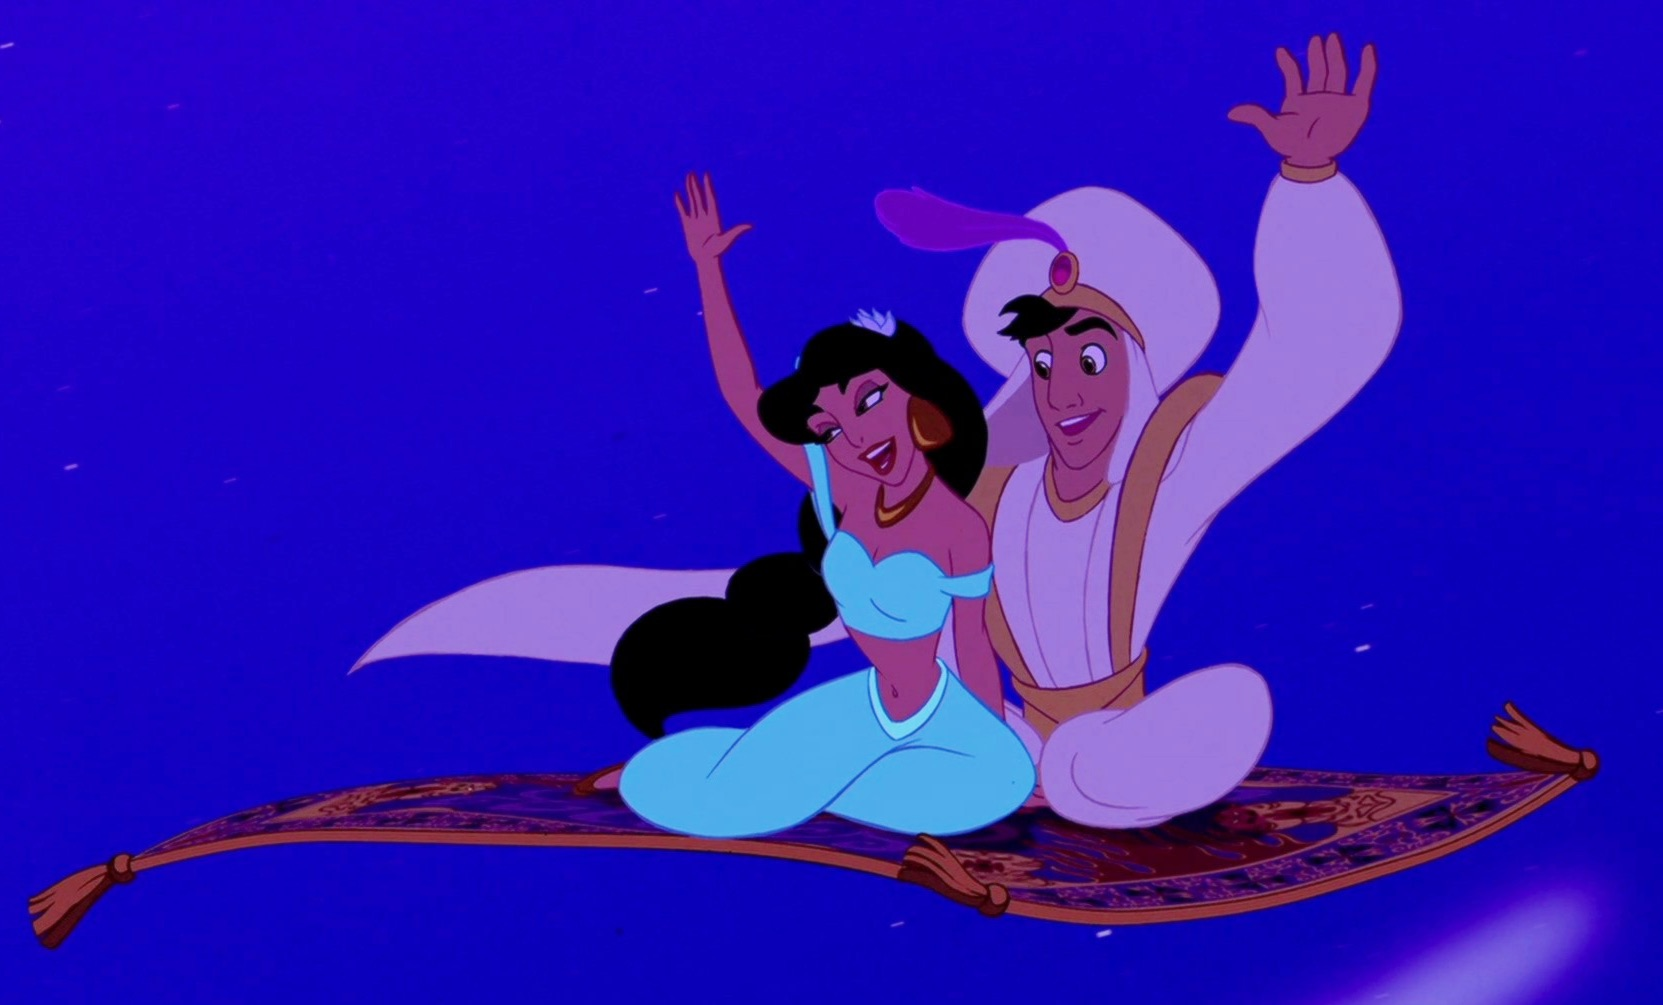 Supposedly, Disney is having a rough time finding the perfect Aladdin and Jasmine for their live-action remake